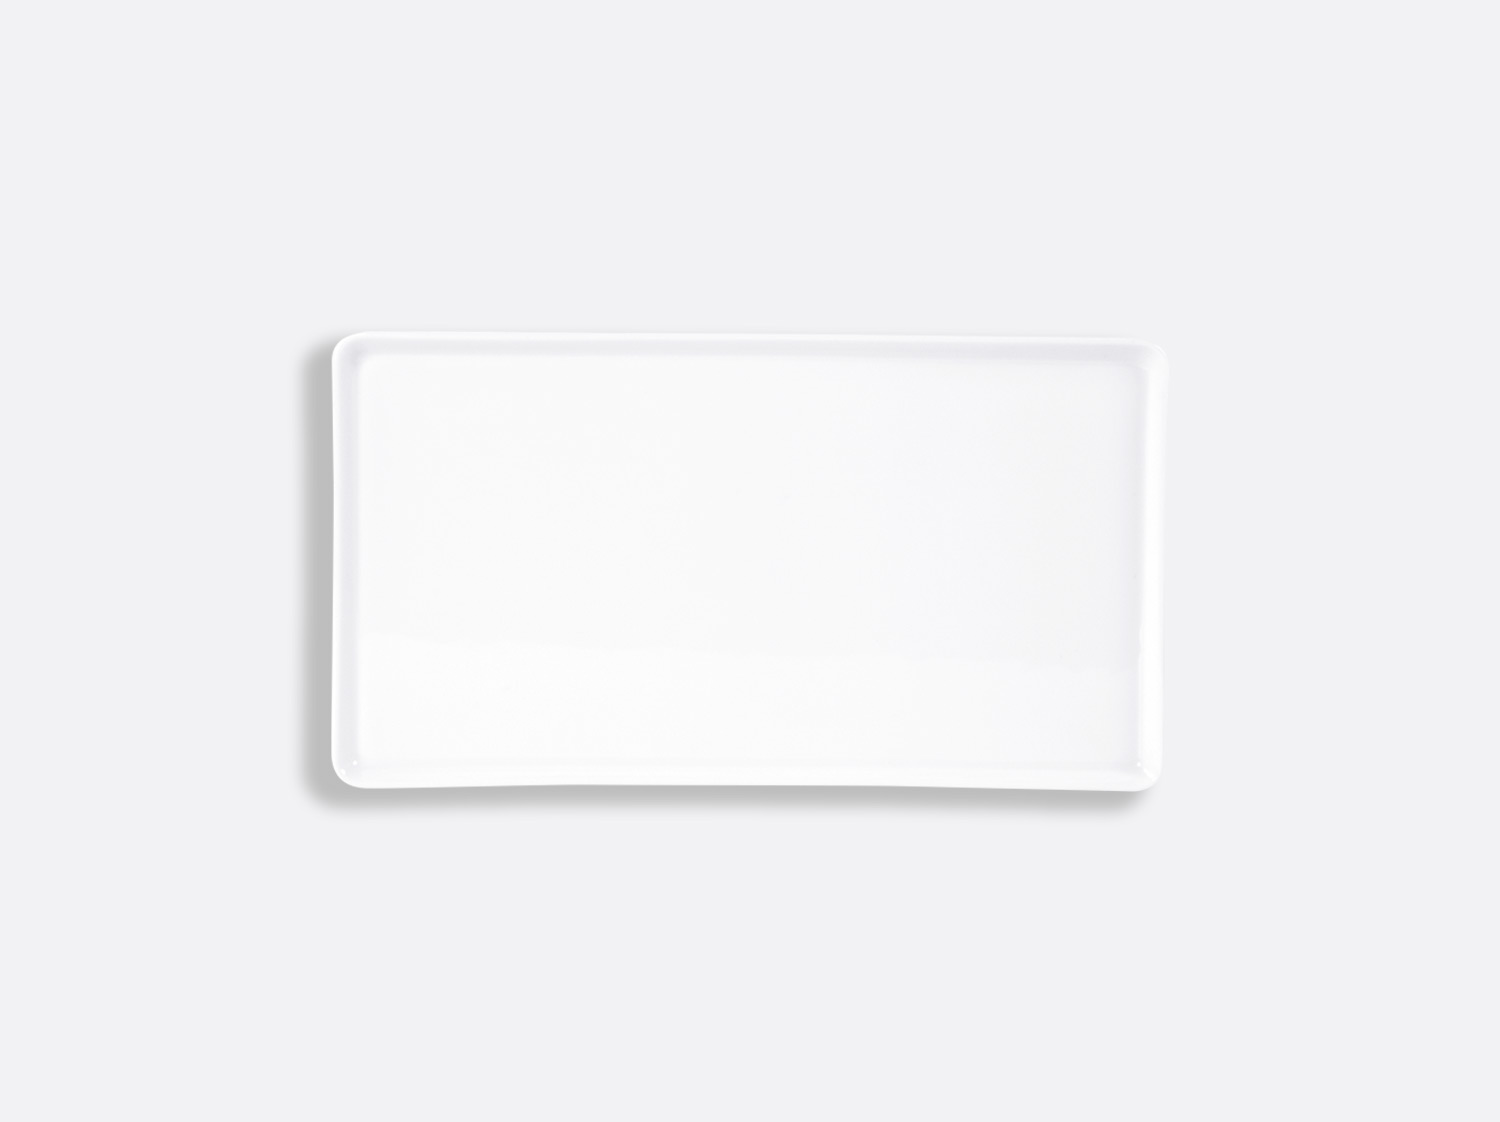 Plateau rectangulaire 27 x 15 cm en porcelaine de la collection FANTAISIES BLANCHES Bernardaud